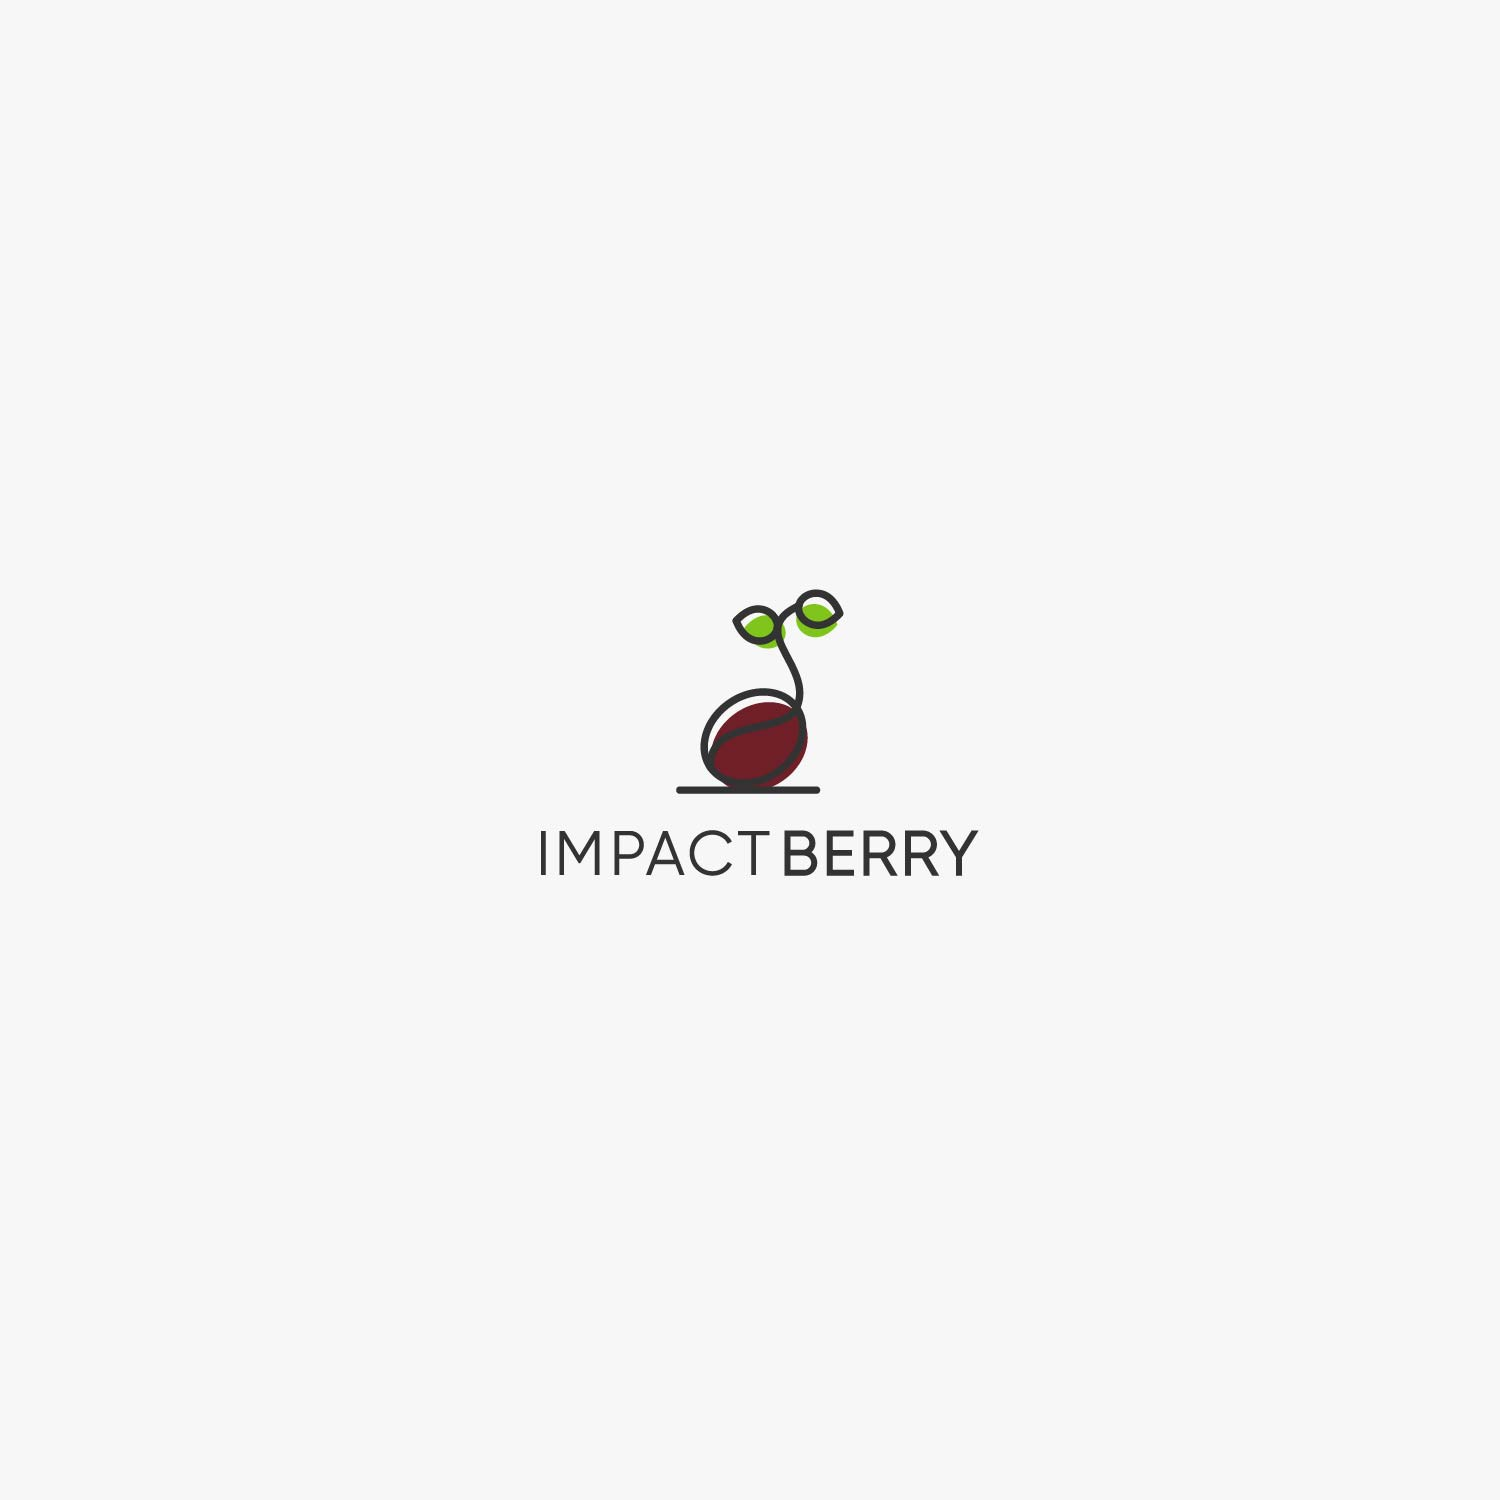 'Impact Berry' wants your puristic logo design!